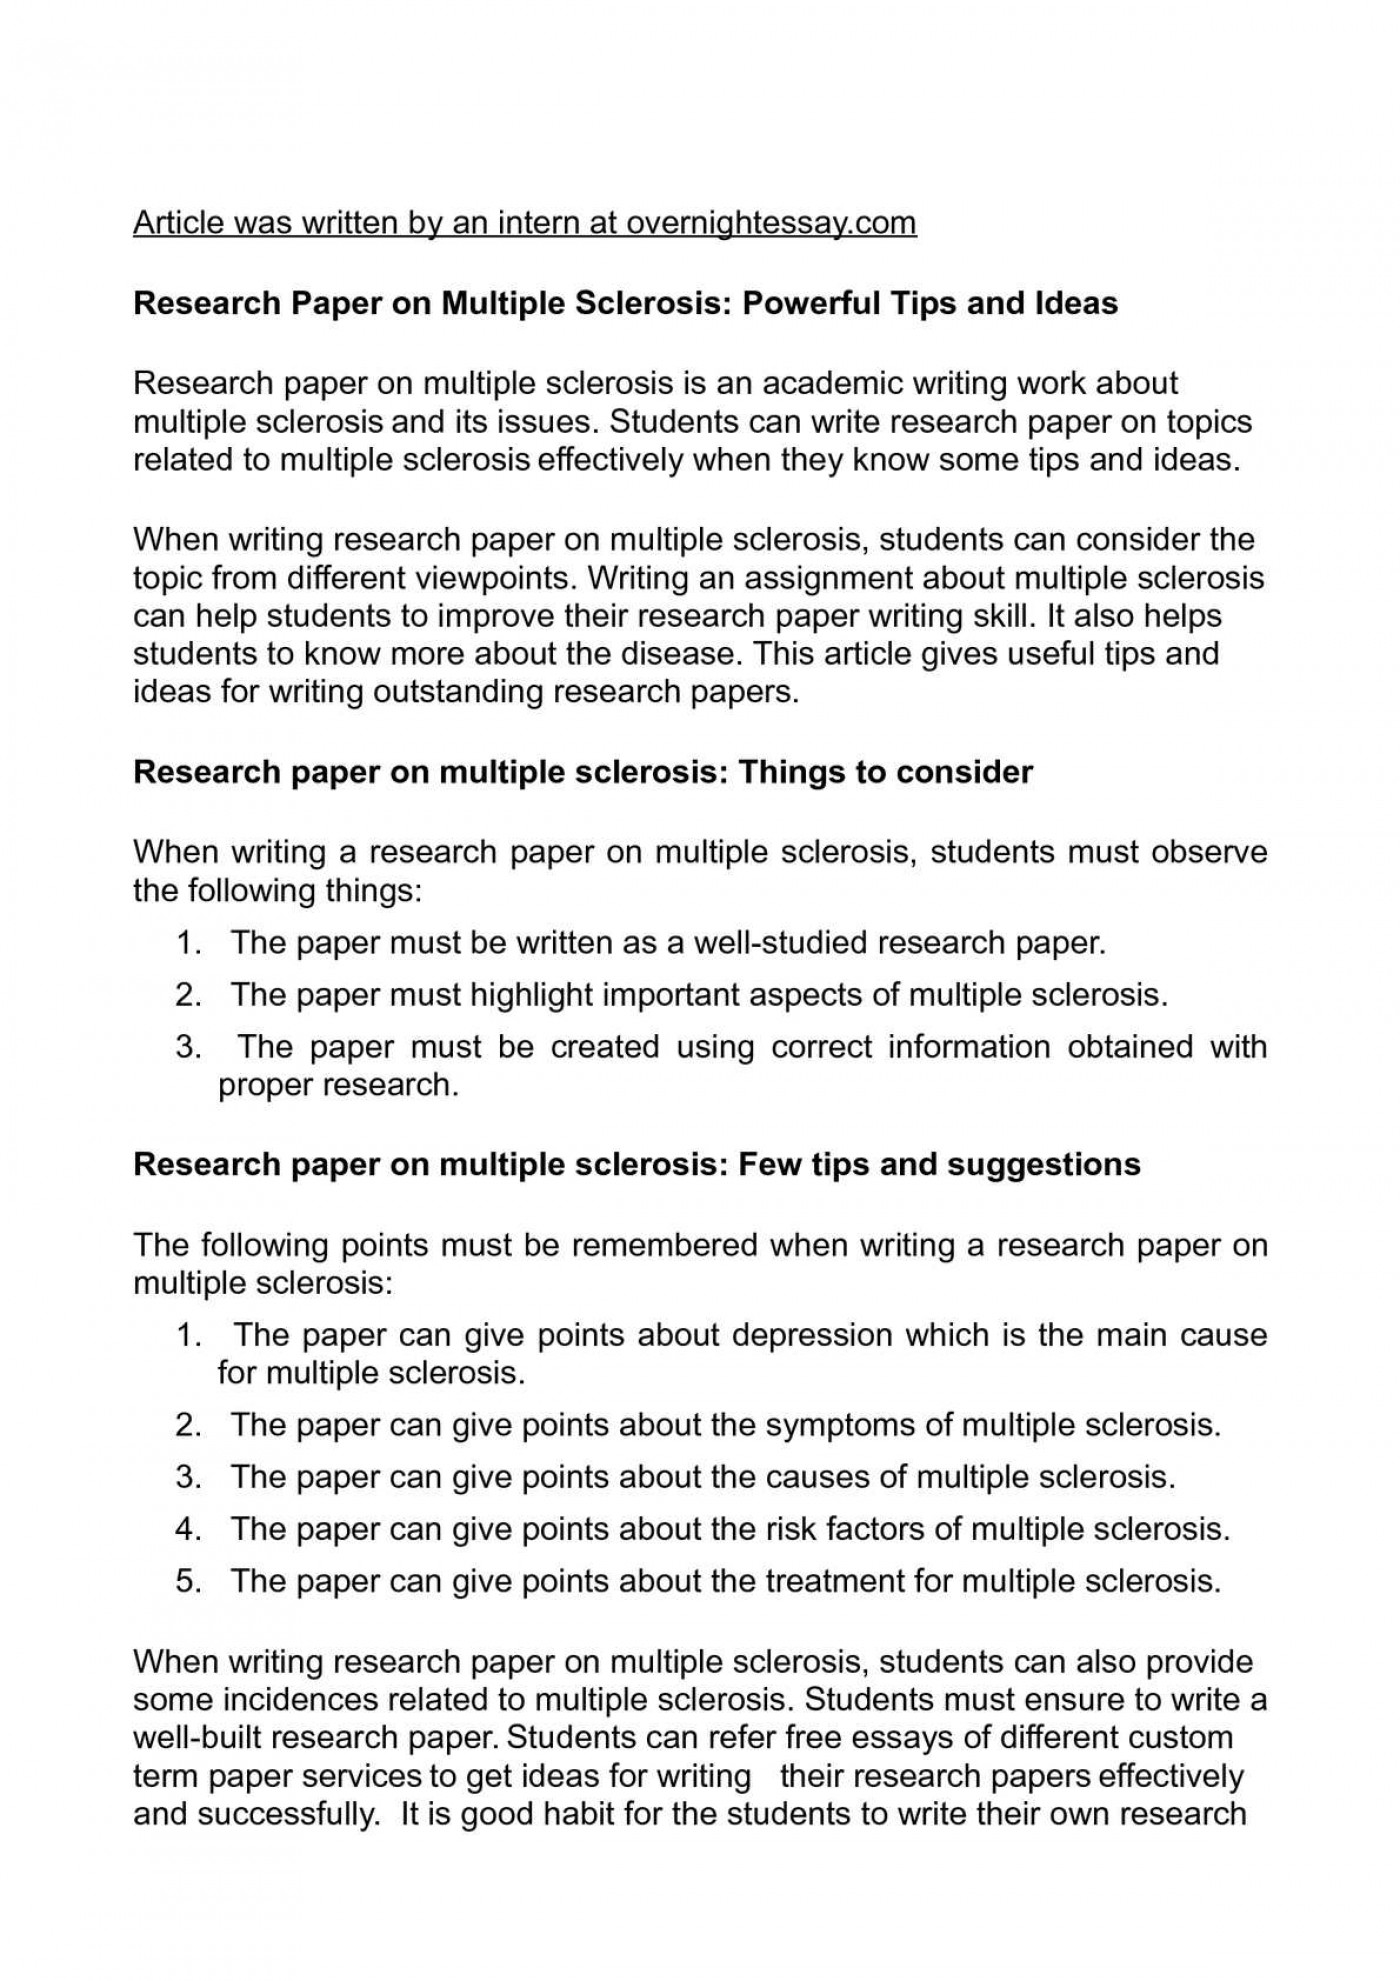 015 Research Paper How To Write Breathtaking A Conclusion For Mla An Abstract Examples Introduction 1400